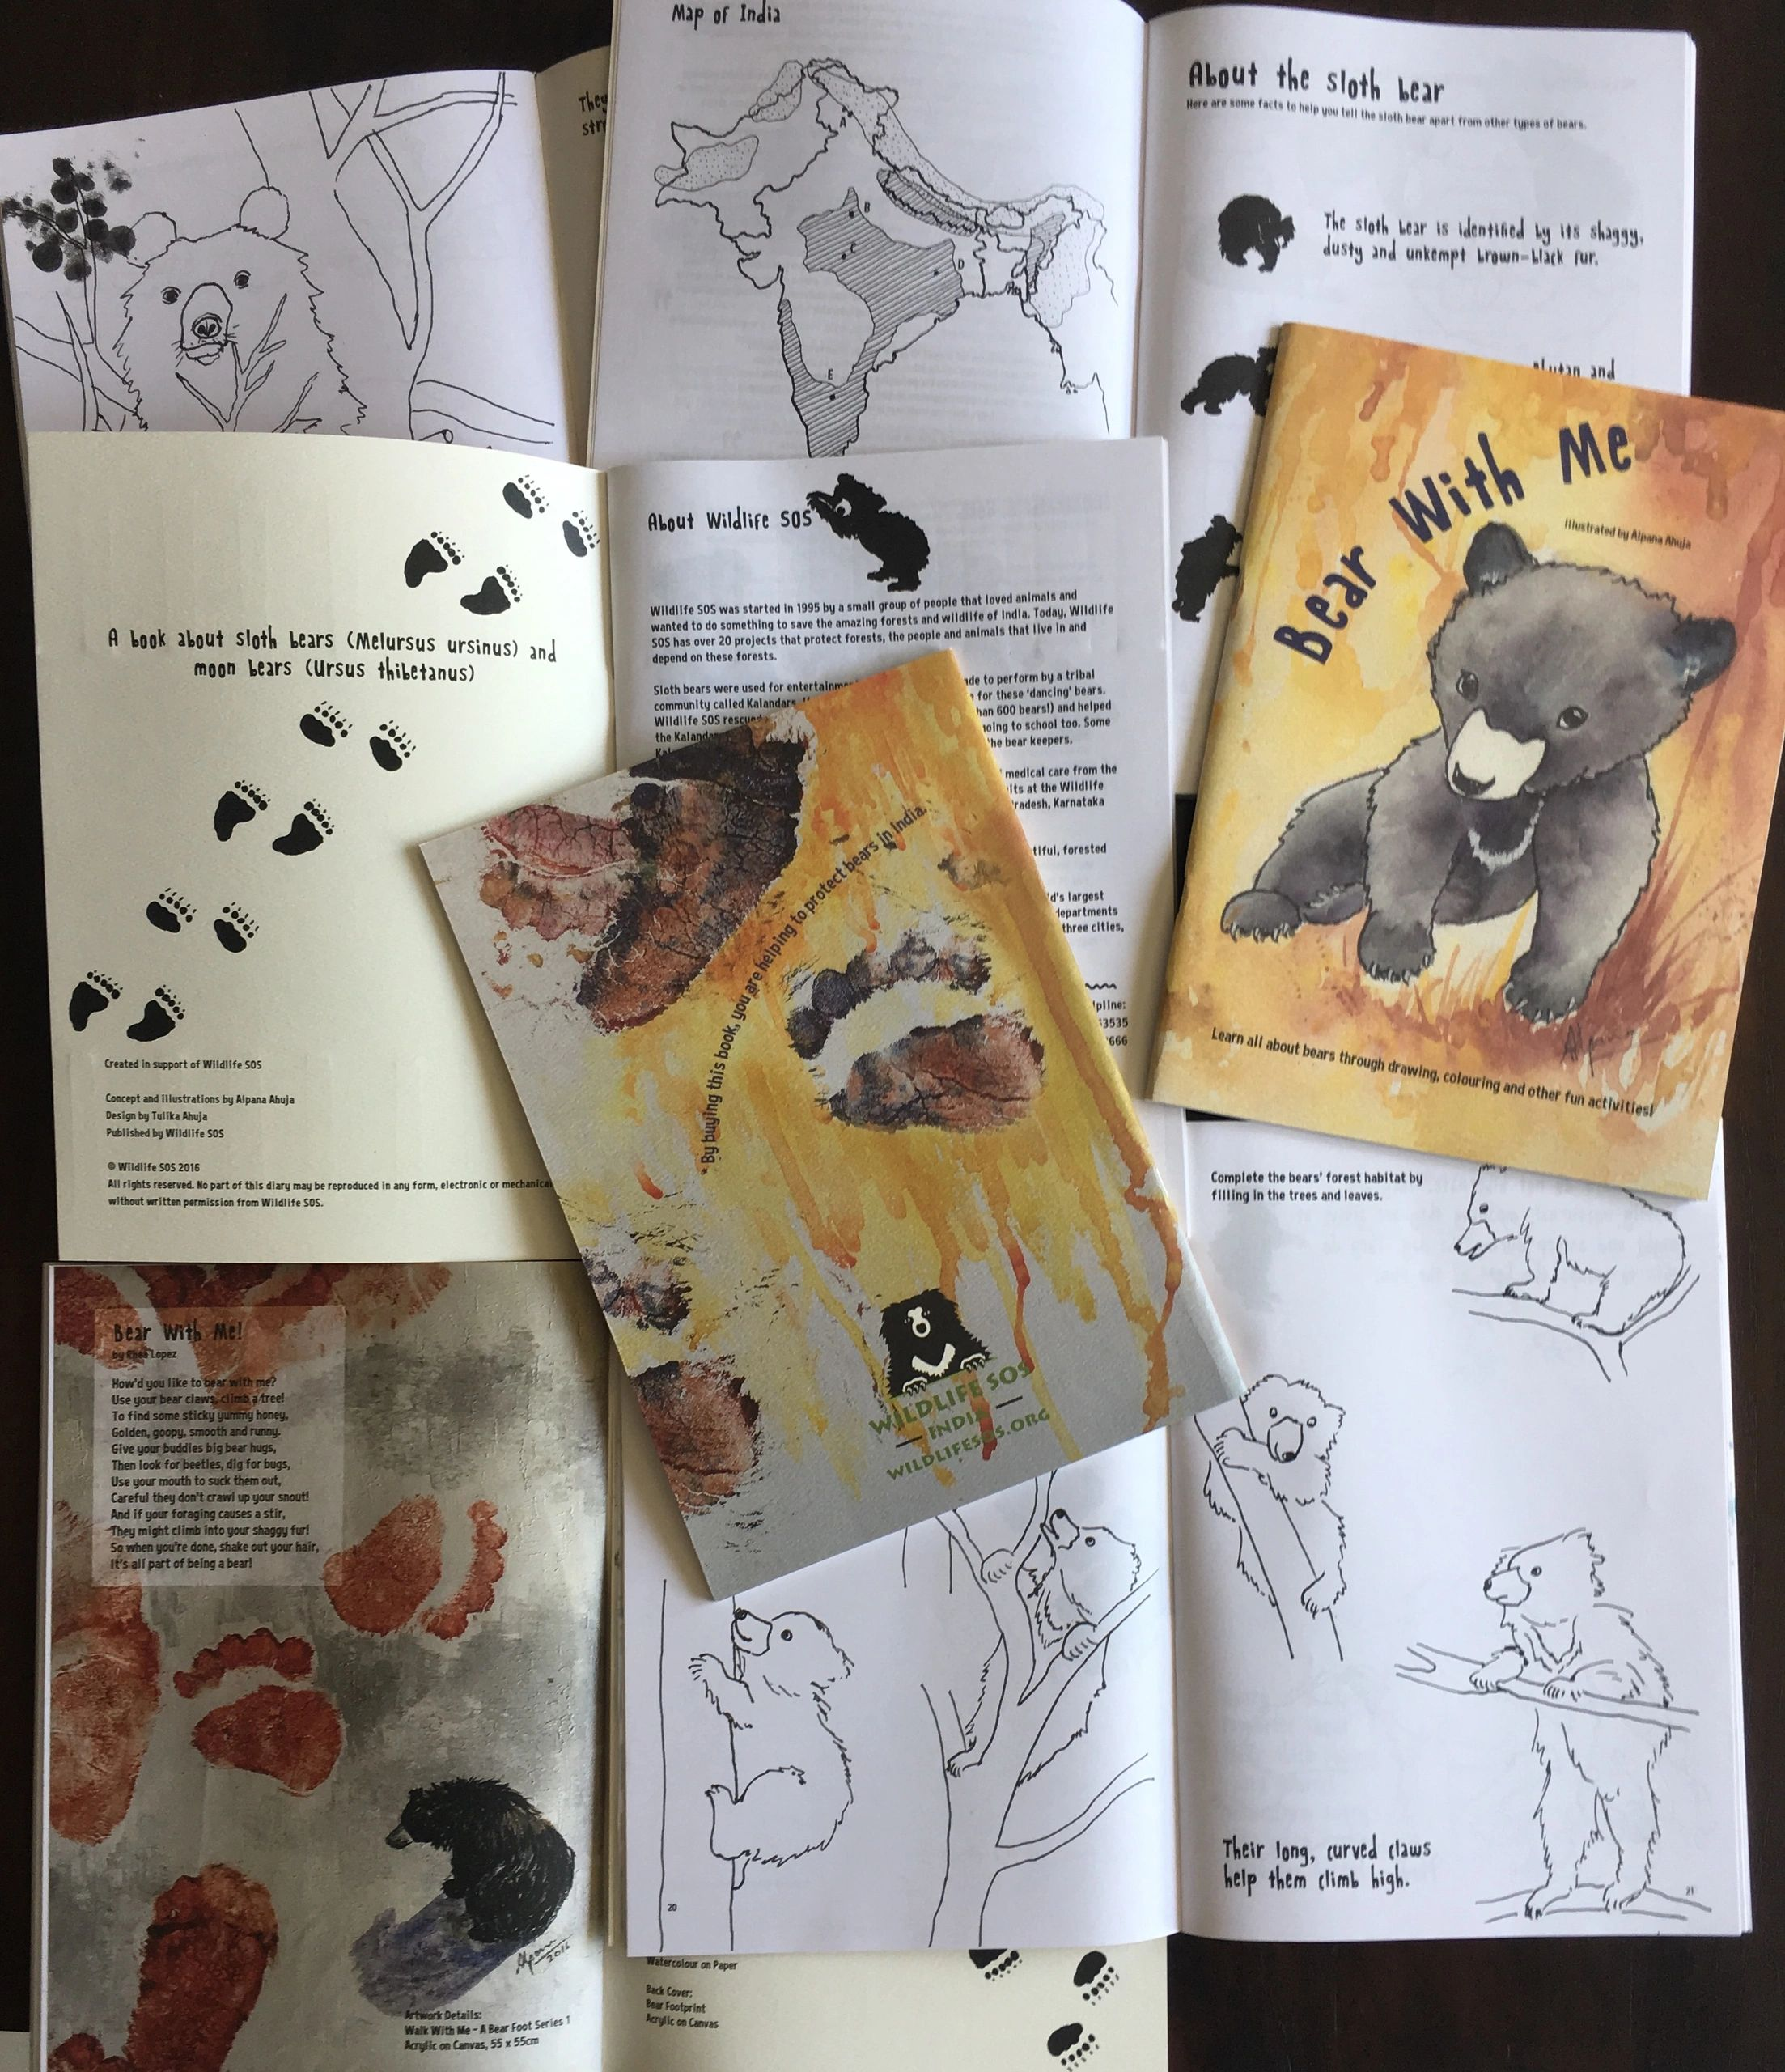 "{""blocks"":[{""key"":""37nfb"",""text"":""Bear With Me (2016). An activity book compiling research into India's bears and their habitats. Targeted at children and young adults, it has 52 pages of art activities."",""type"":""unstyled"",""depth"":0,""inlineStyleRanges"":[{""offset"":0,""length"":13,""style"":""BOLD""}],""entityRanges"":[],""data"":{}}],""entityMap"":{}}"